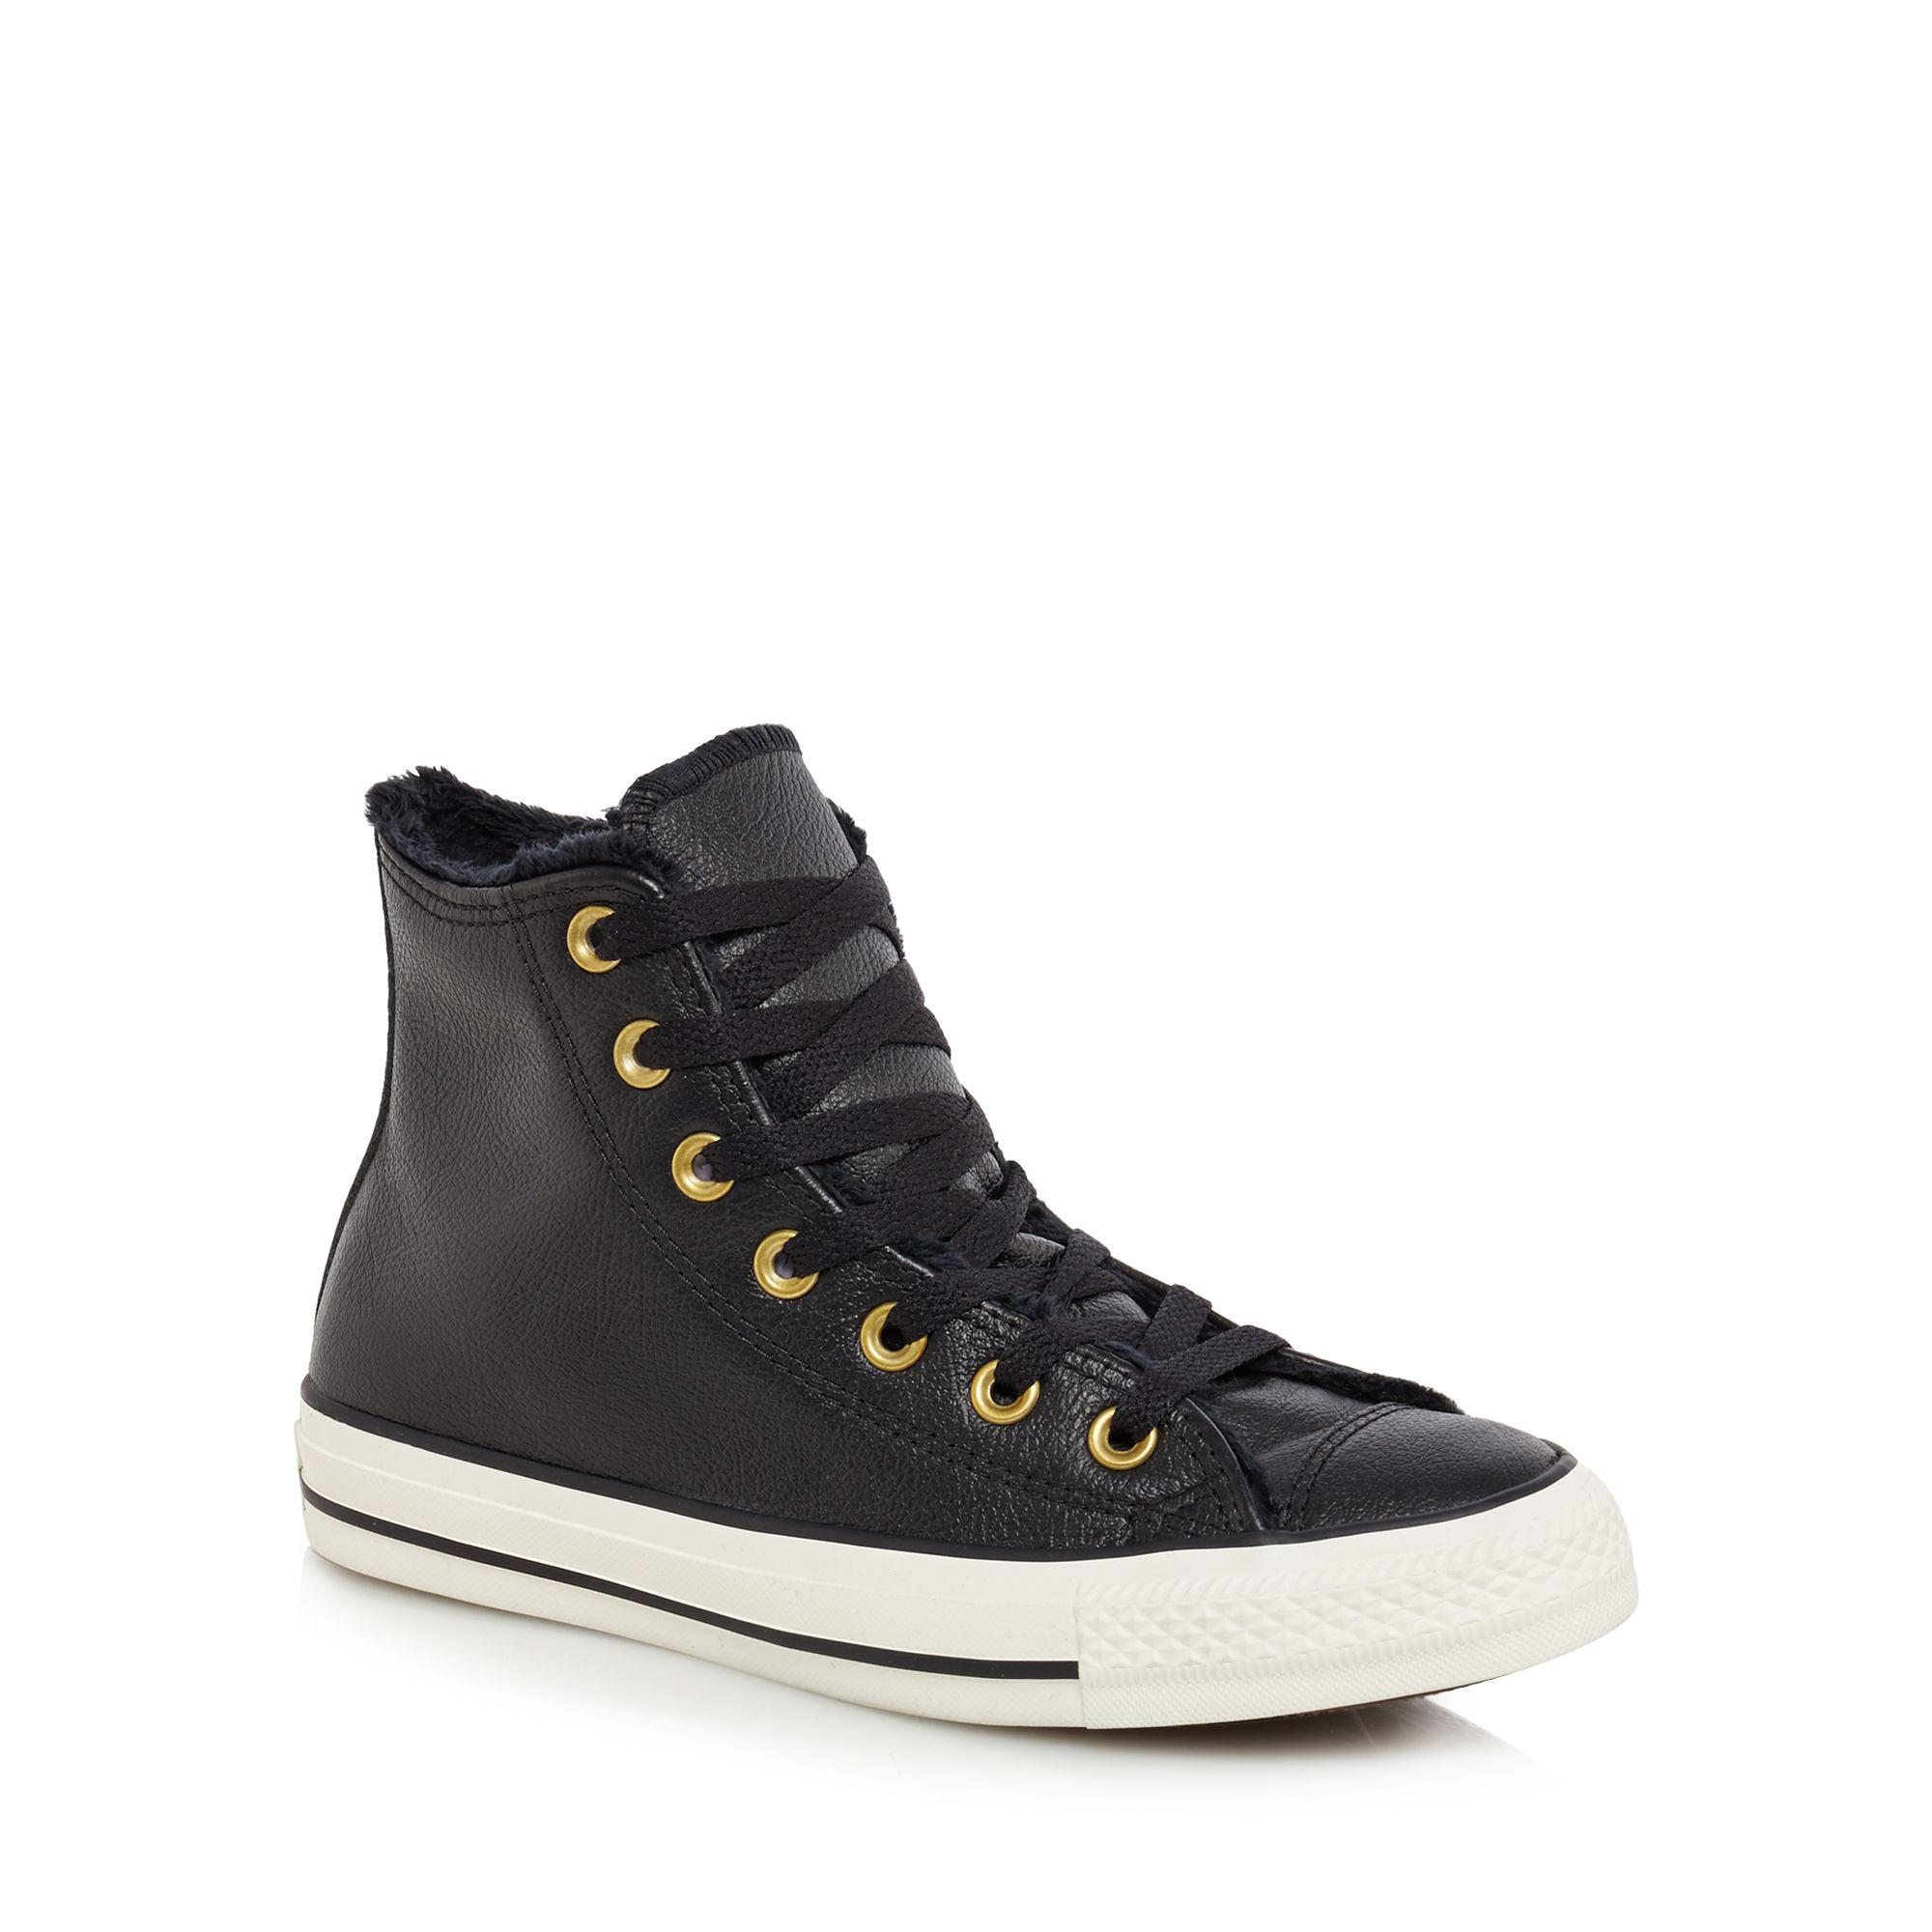 2841aa51e95e Converse Black Leather  all Star  High Tops in Black - Lyst